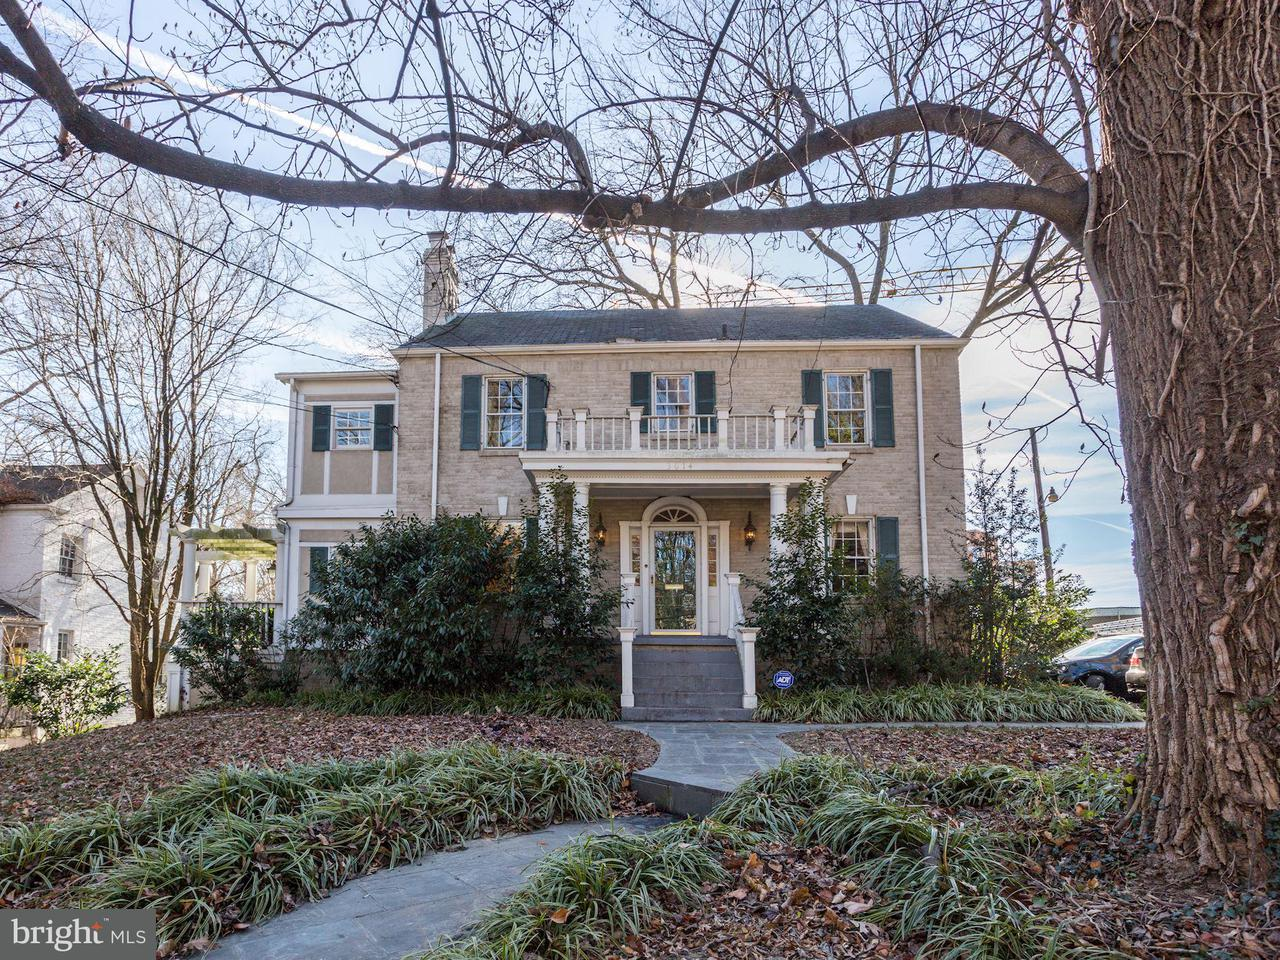 Single Family Home for Sale at 3014 Military Rd Nw 3014 Military Rd Nw Washington, District Of Columbia 20015 United States